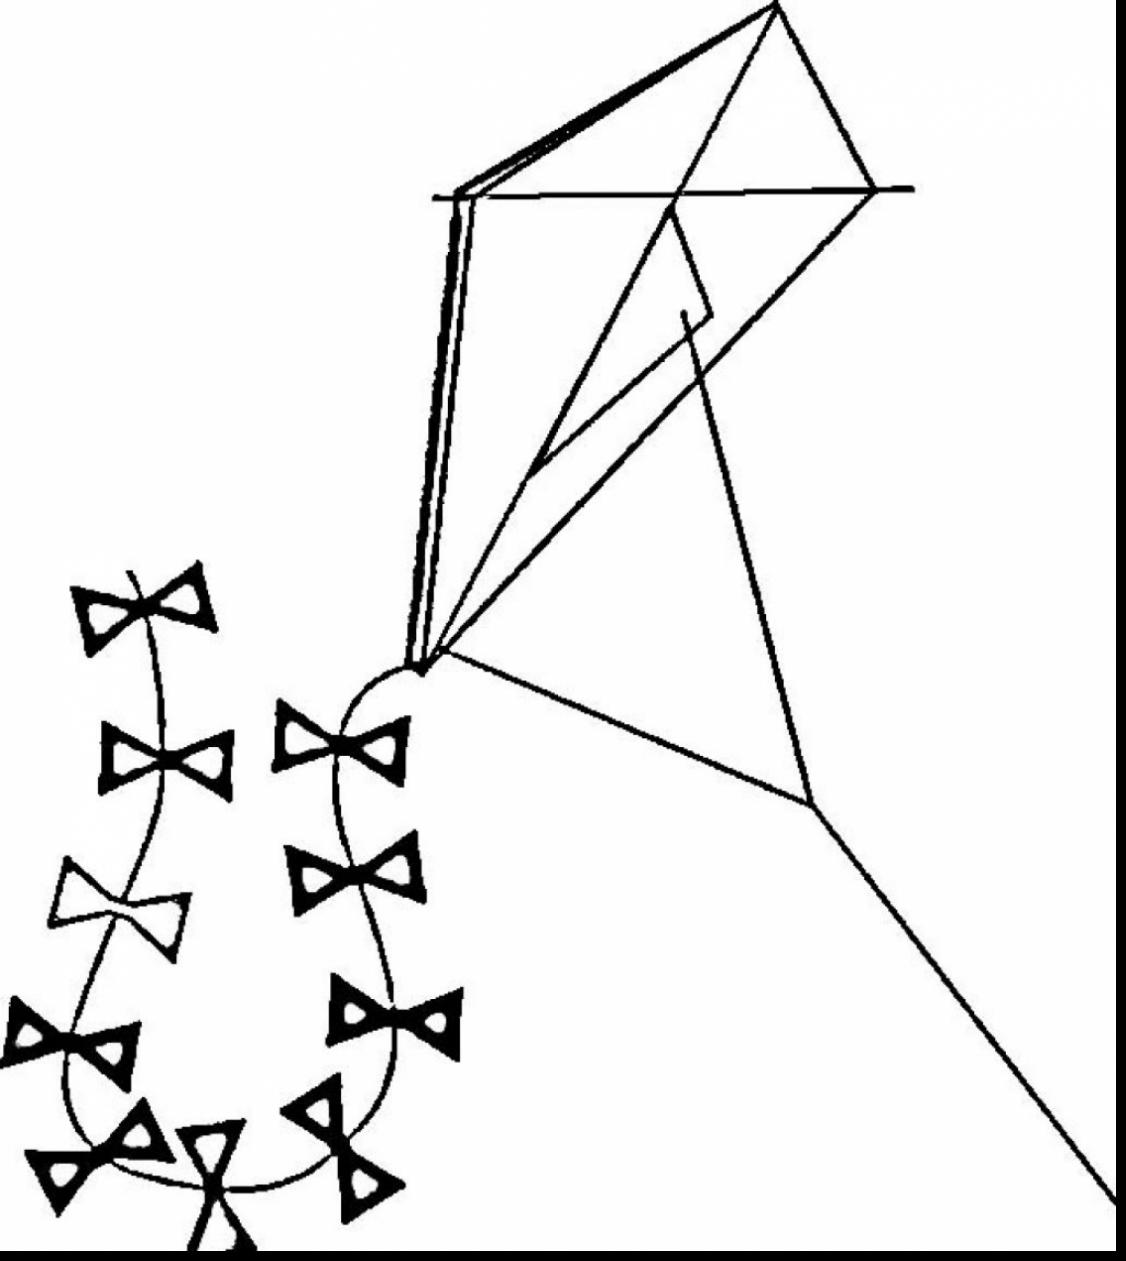 kite for coloring kite coloring pages kidsuki coloring kite for